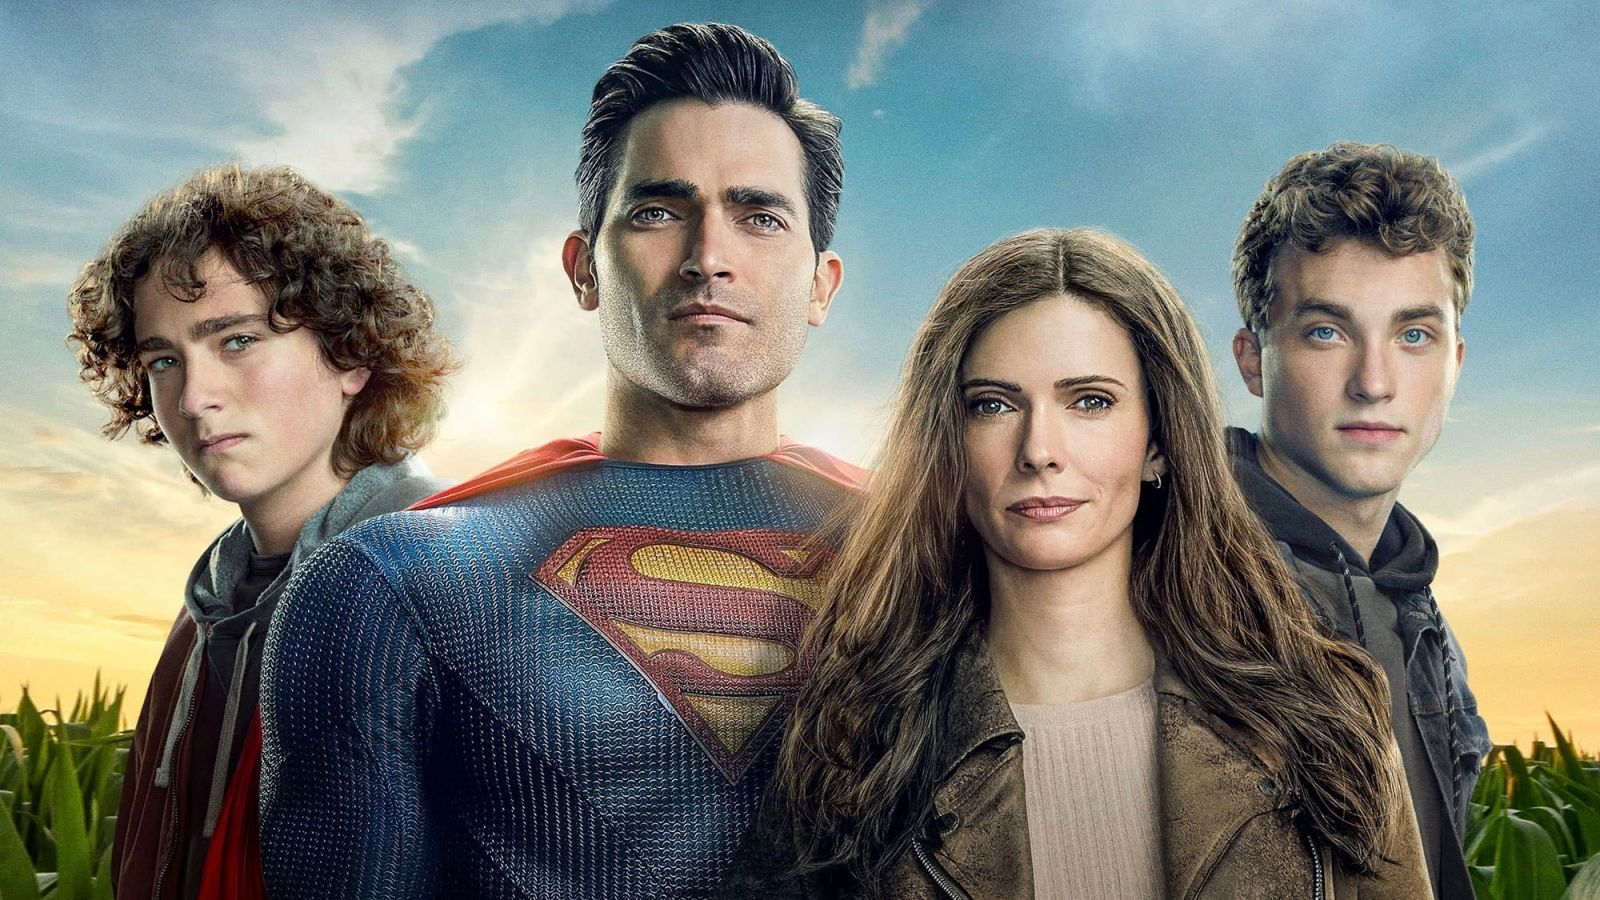 Superman and Lois 2021 Full Movies Free Watch Online